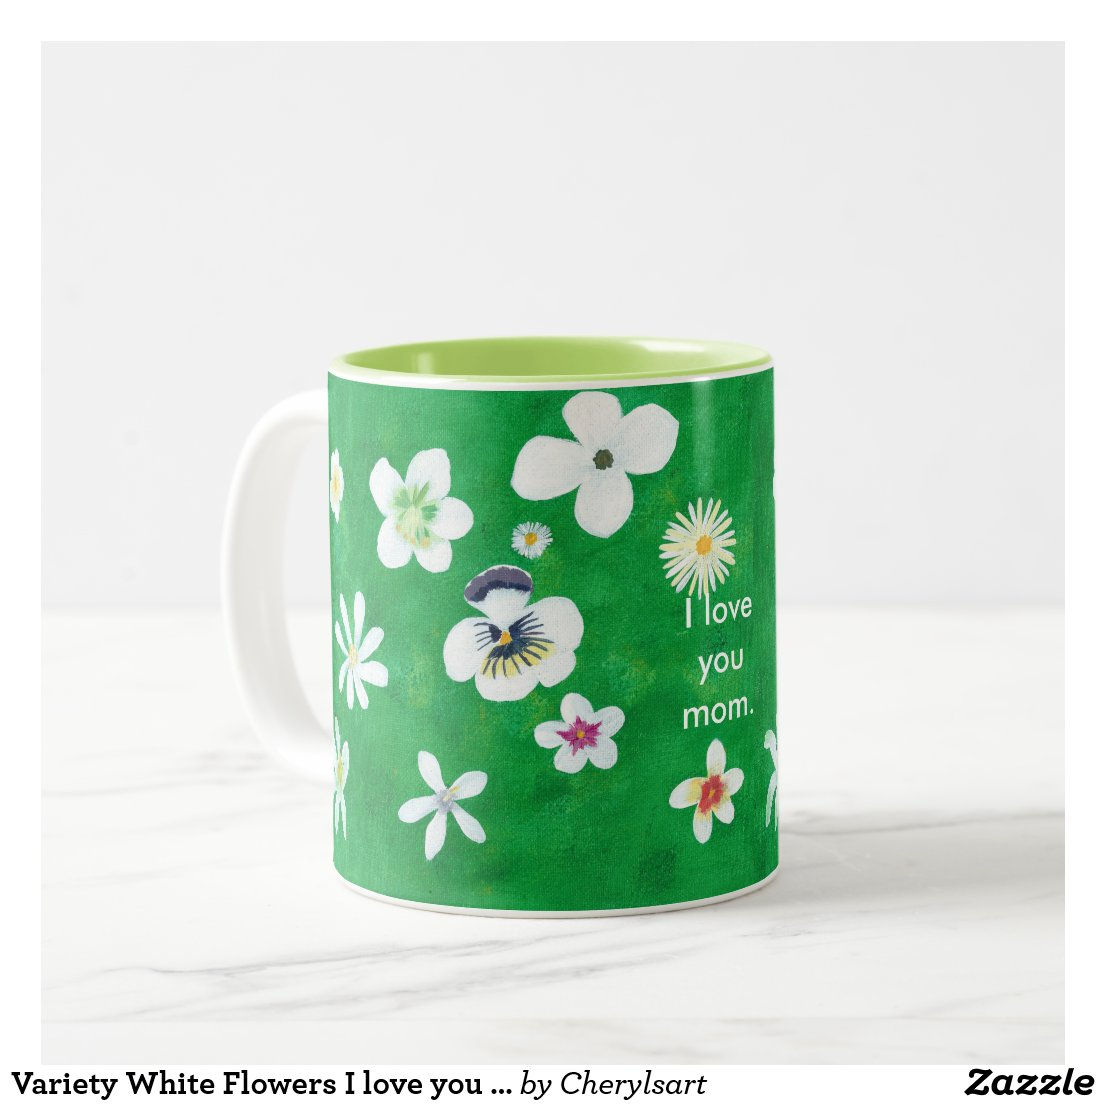 Variety White Flowers I love you Mom Mugs